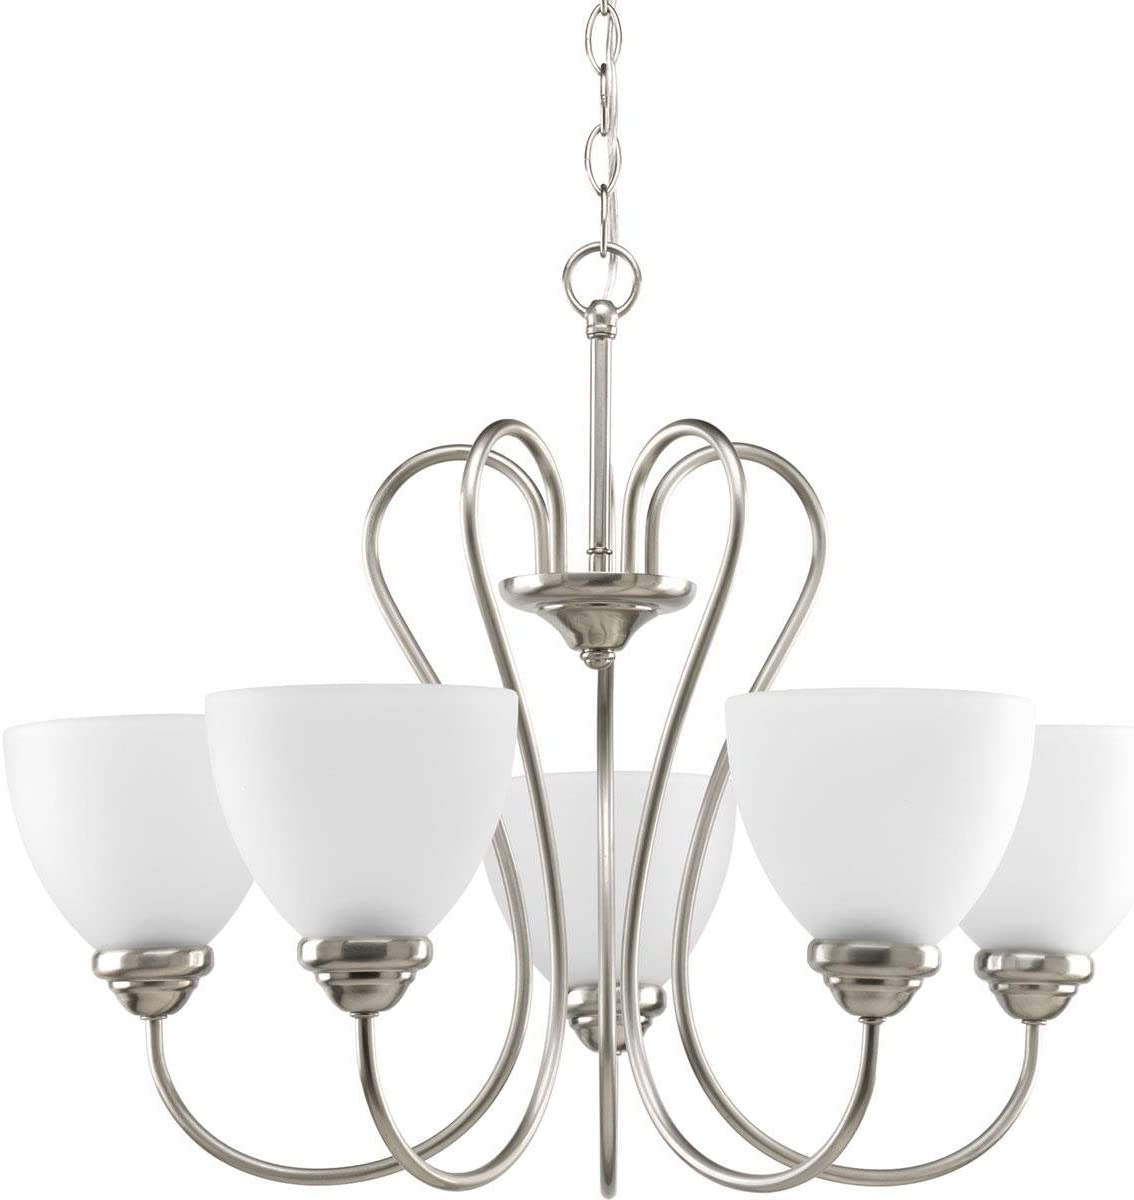 Progress Lighting P4666-09 Transitional Five Light Chandelier from Heart Collection in Pwt, Nckl, B S, Slvr. Finish, Brushed Nickel